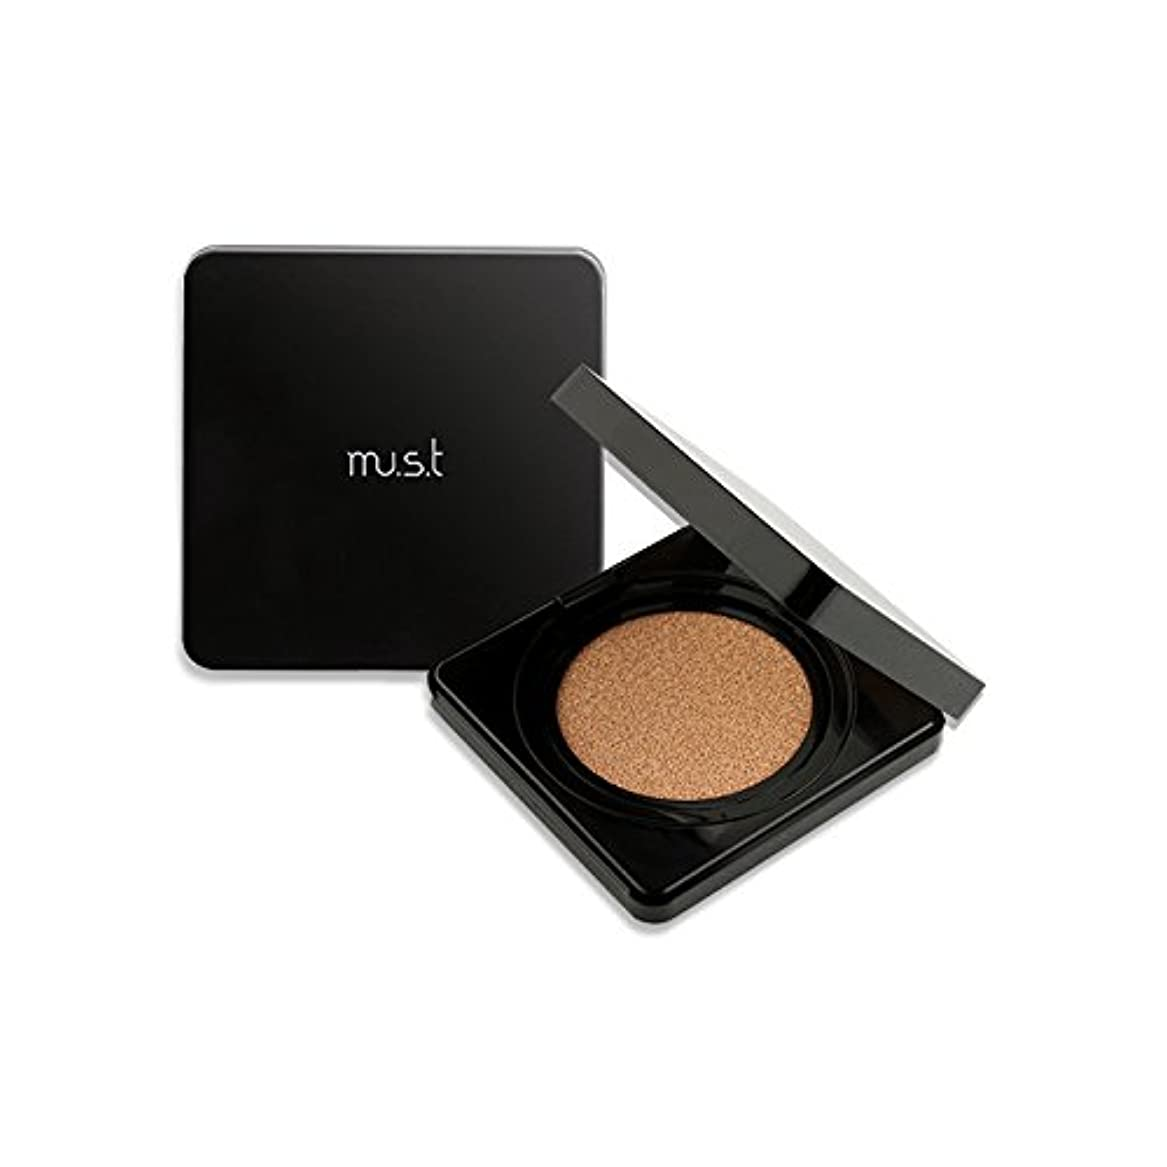 消化鷲寝てるmu.s.t ファウンデーション SPF 50+/PA++++ 10g MAGNETISM CUSHION FOUNDATION (IVORY)